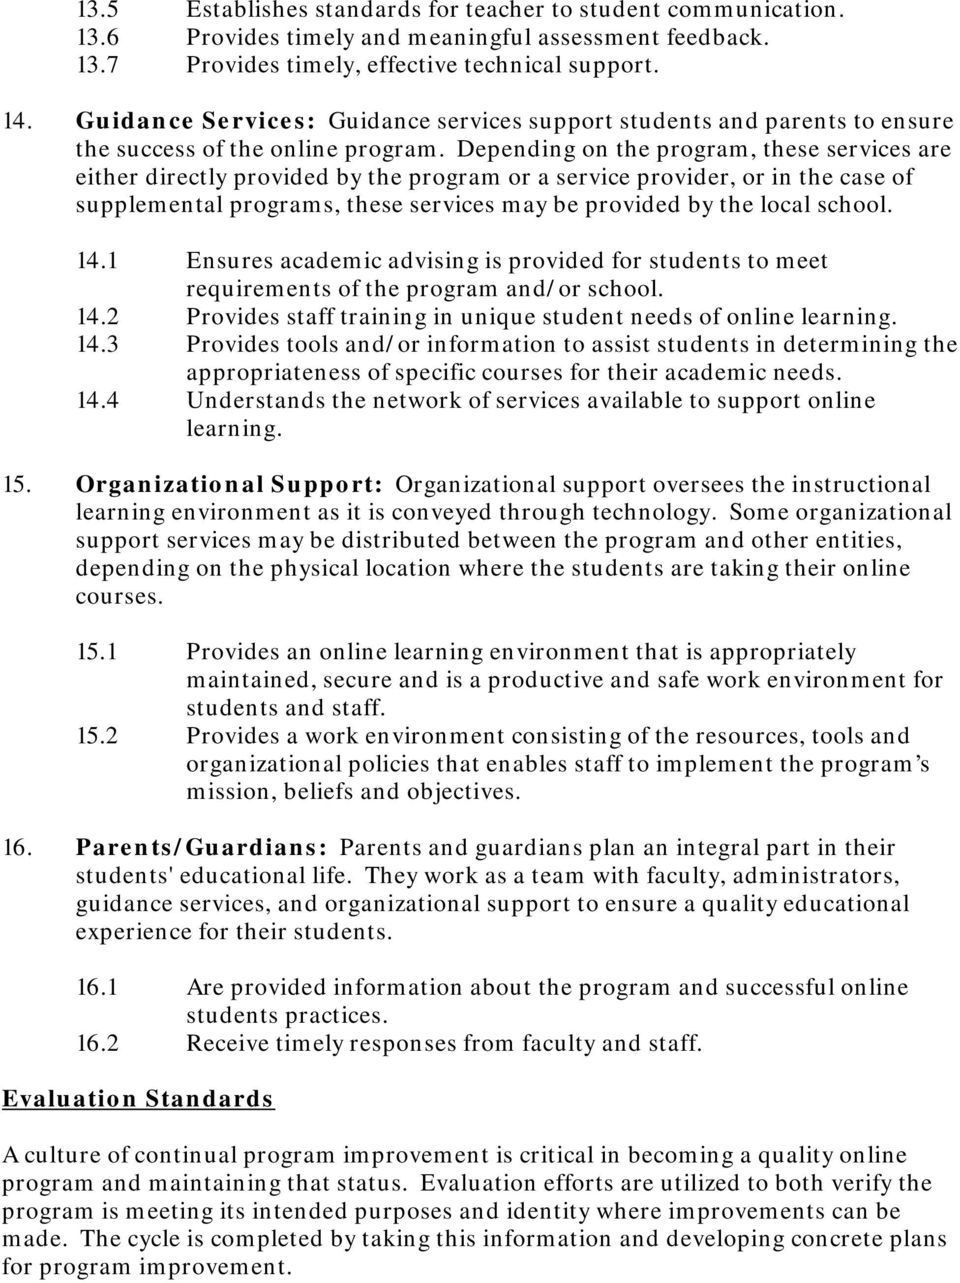 Depending on the program, these services are either directly provided by the program or a service provider, or in the case of supplemental programs, these services may be provided by the local school.